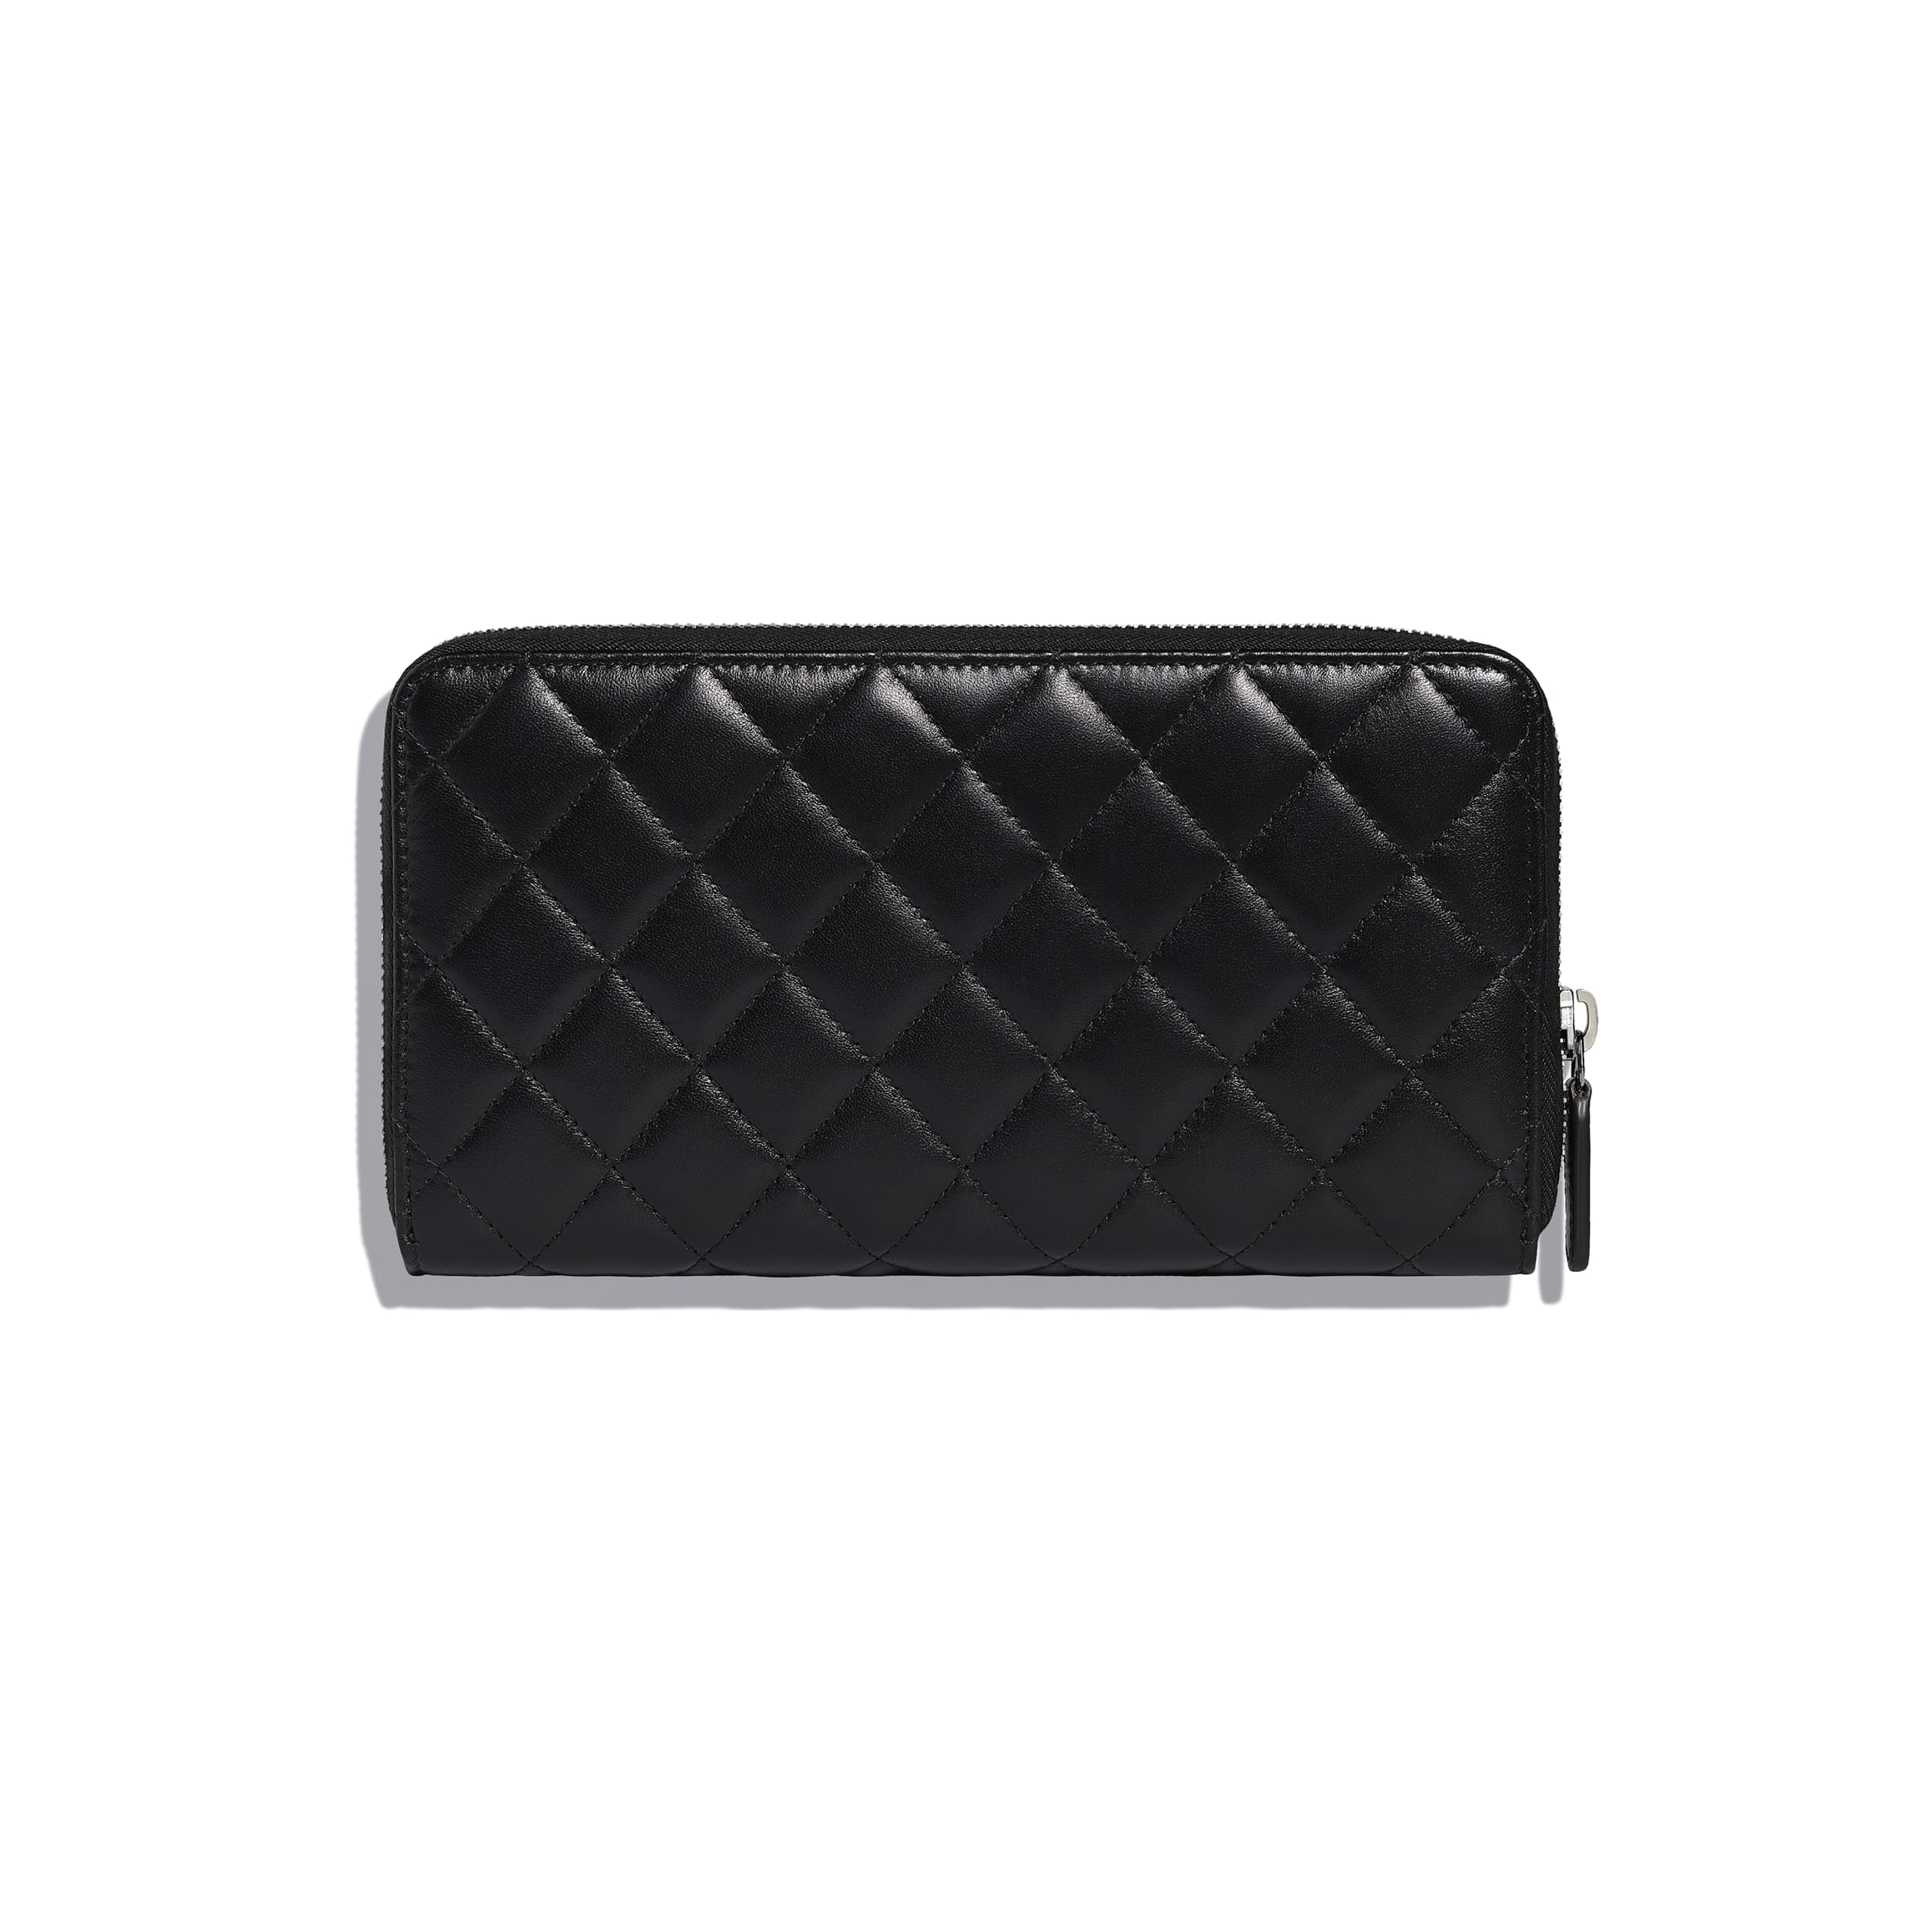 Classic Large Zipped Wallet - Black - Lambskin - Alternative view - see standard sized version